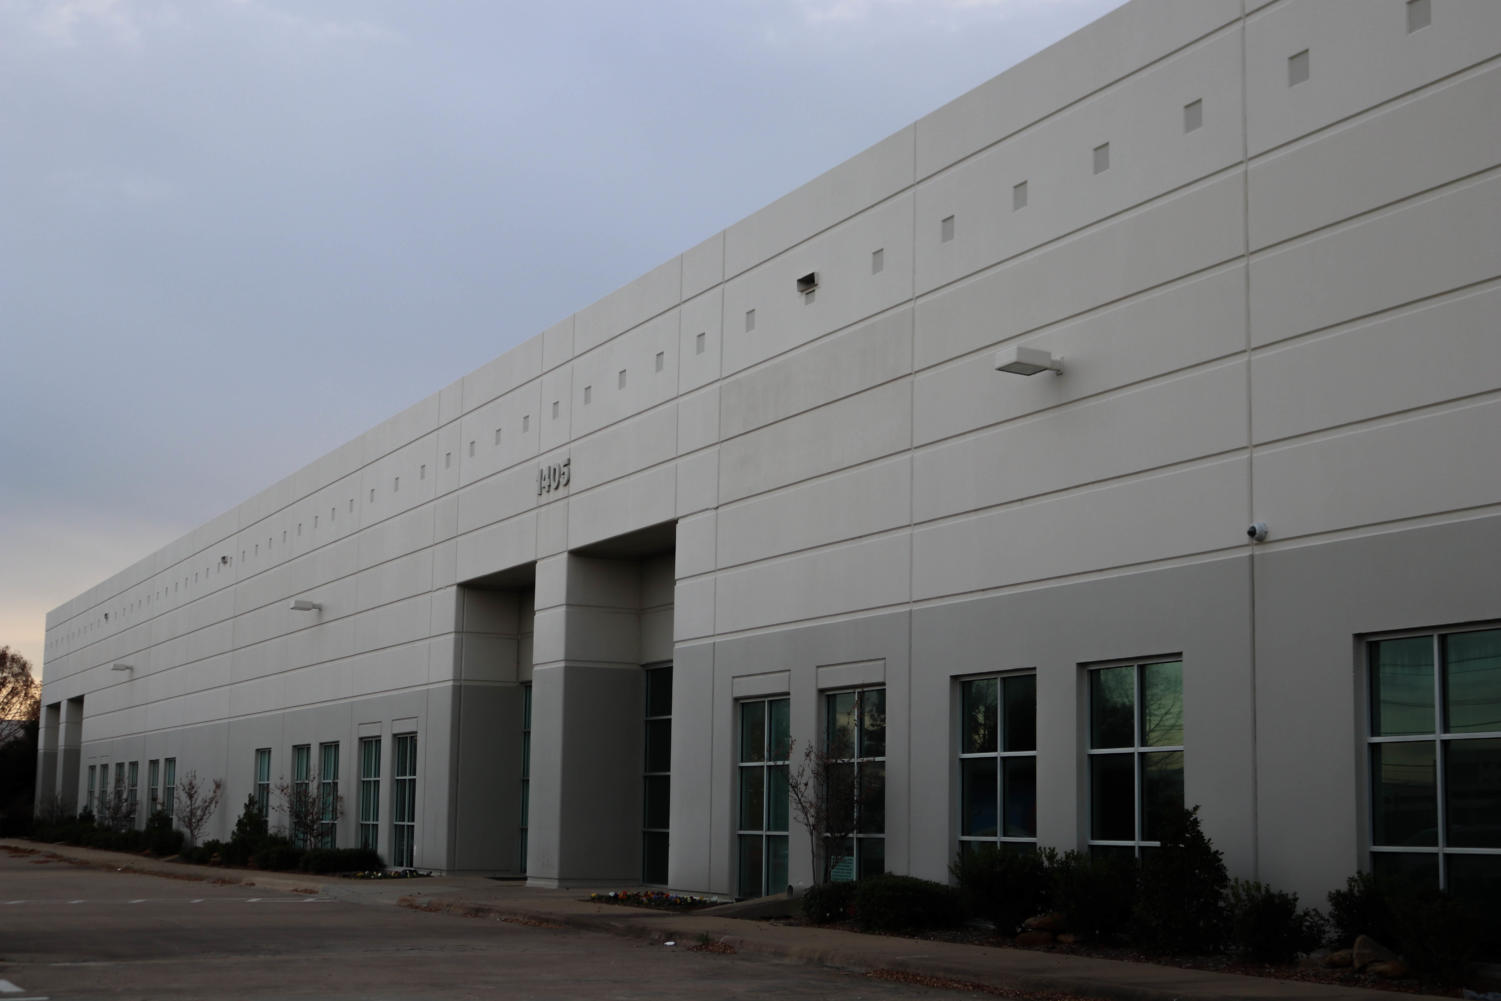 McLaren North America contracted the construction of its custom-designed 30,000 square foot facility at 1405 S. Belt Line Road in Coppell to house its new North American headquarters and more in August. With interior renovations to start soon, McLaren expects to see its new facility open by the start of the second quarter in 2020.